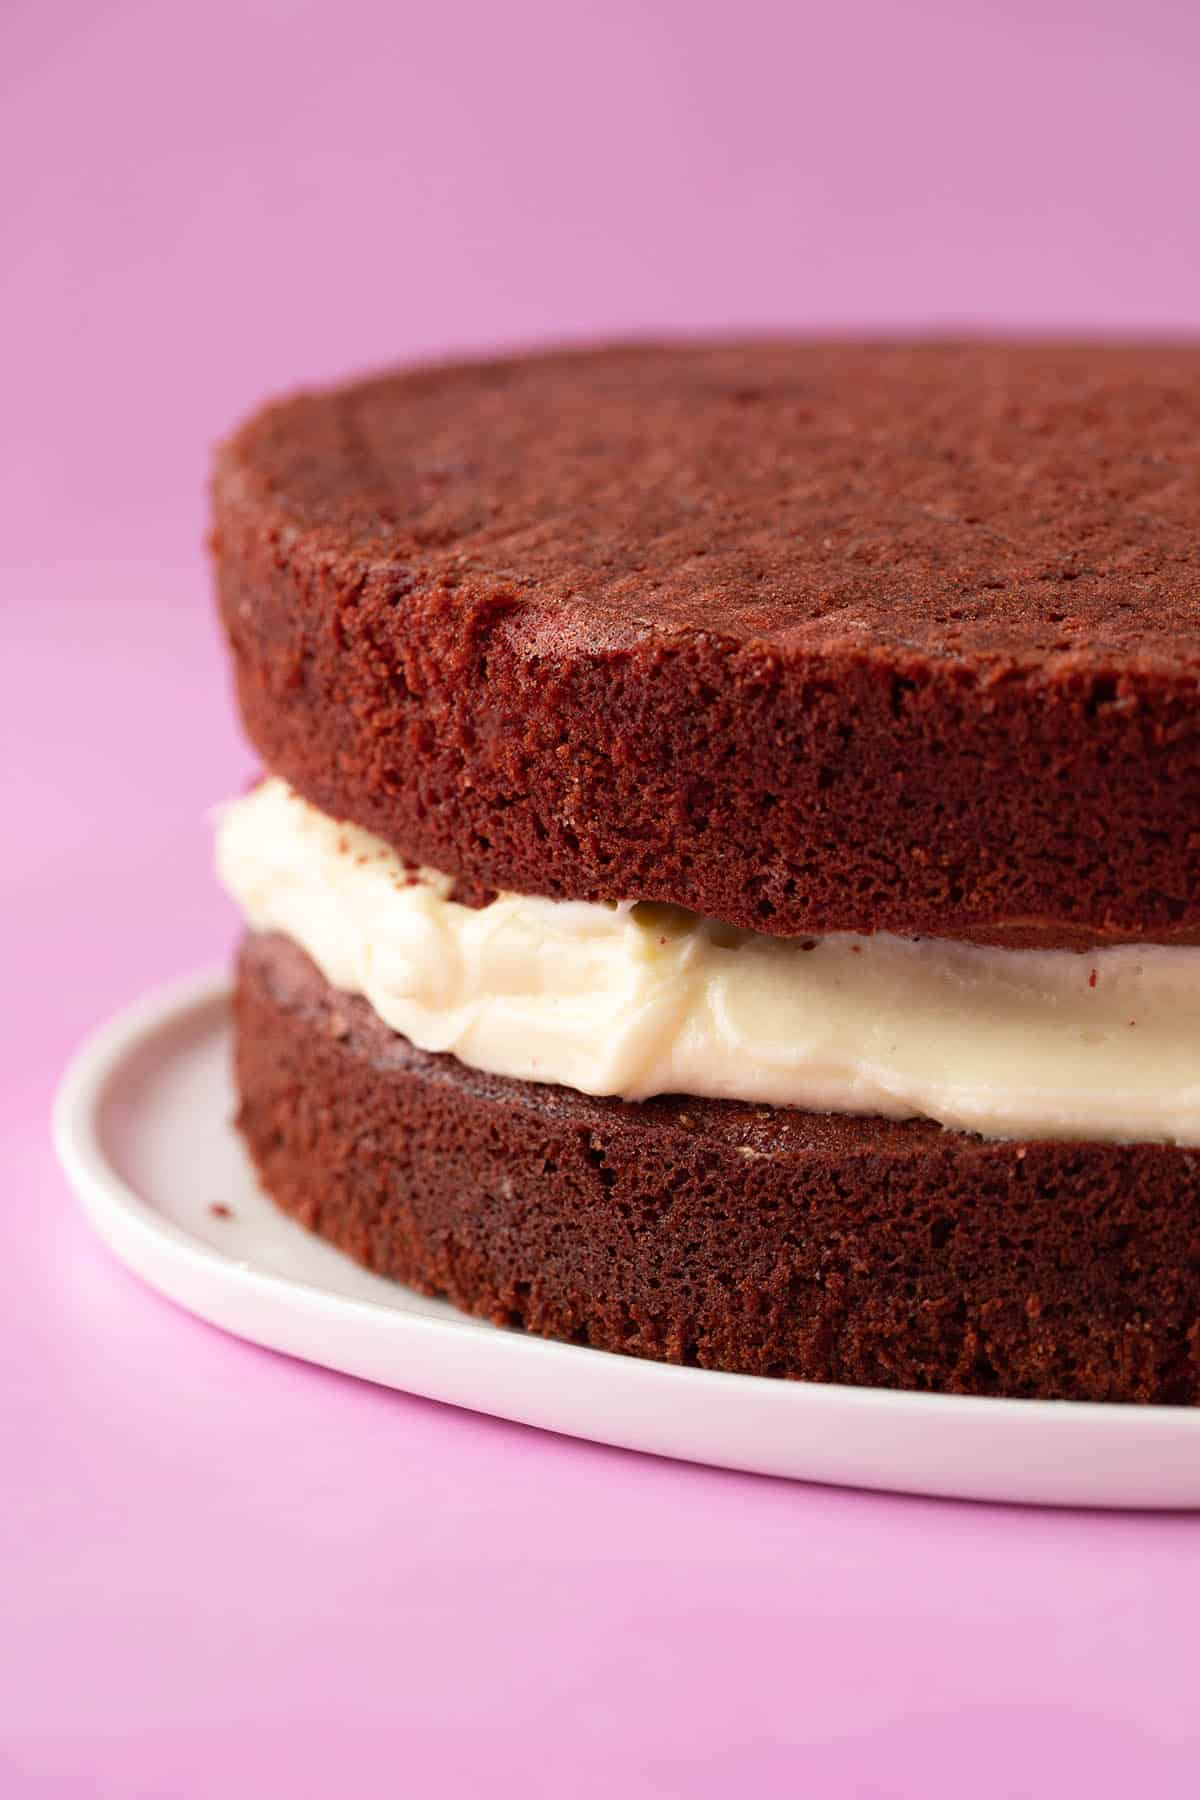 A two layer Red Velvet Cake with cream cheese frosting in the middle